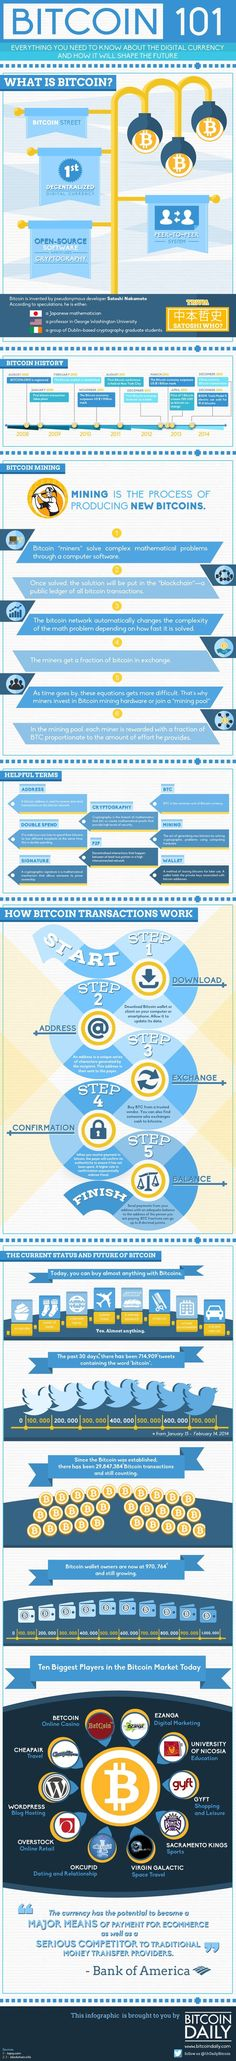 Bitcoin 101. All you need to know about Bitcoin. #bitcoin #affiliate #crytocurrency #trading